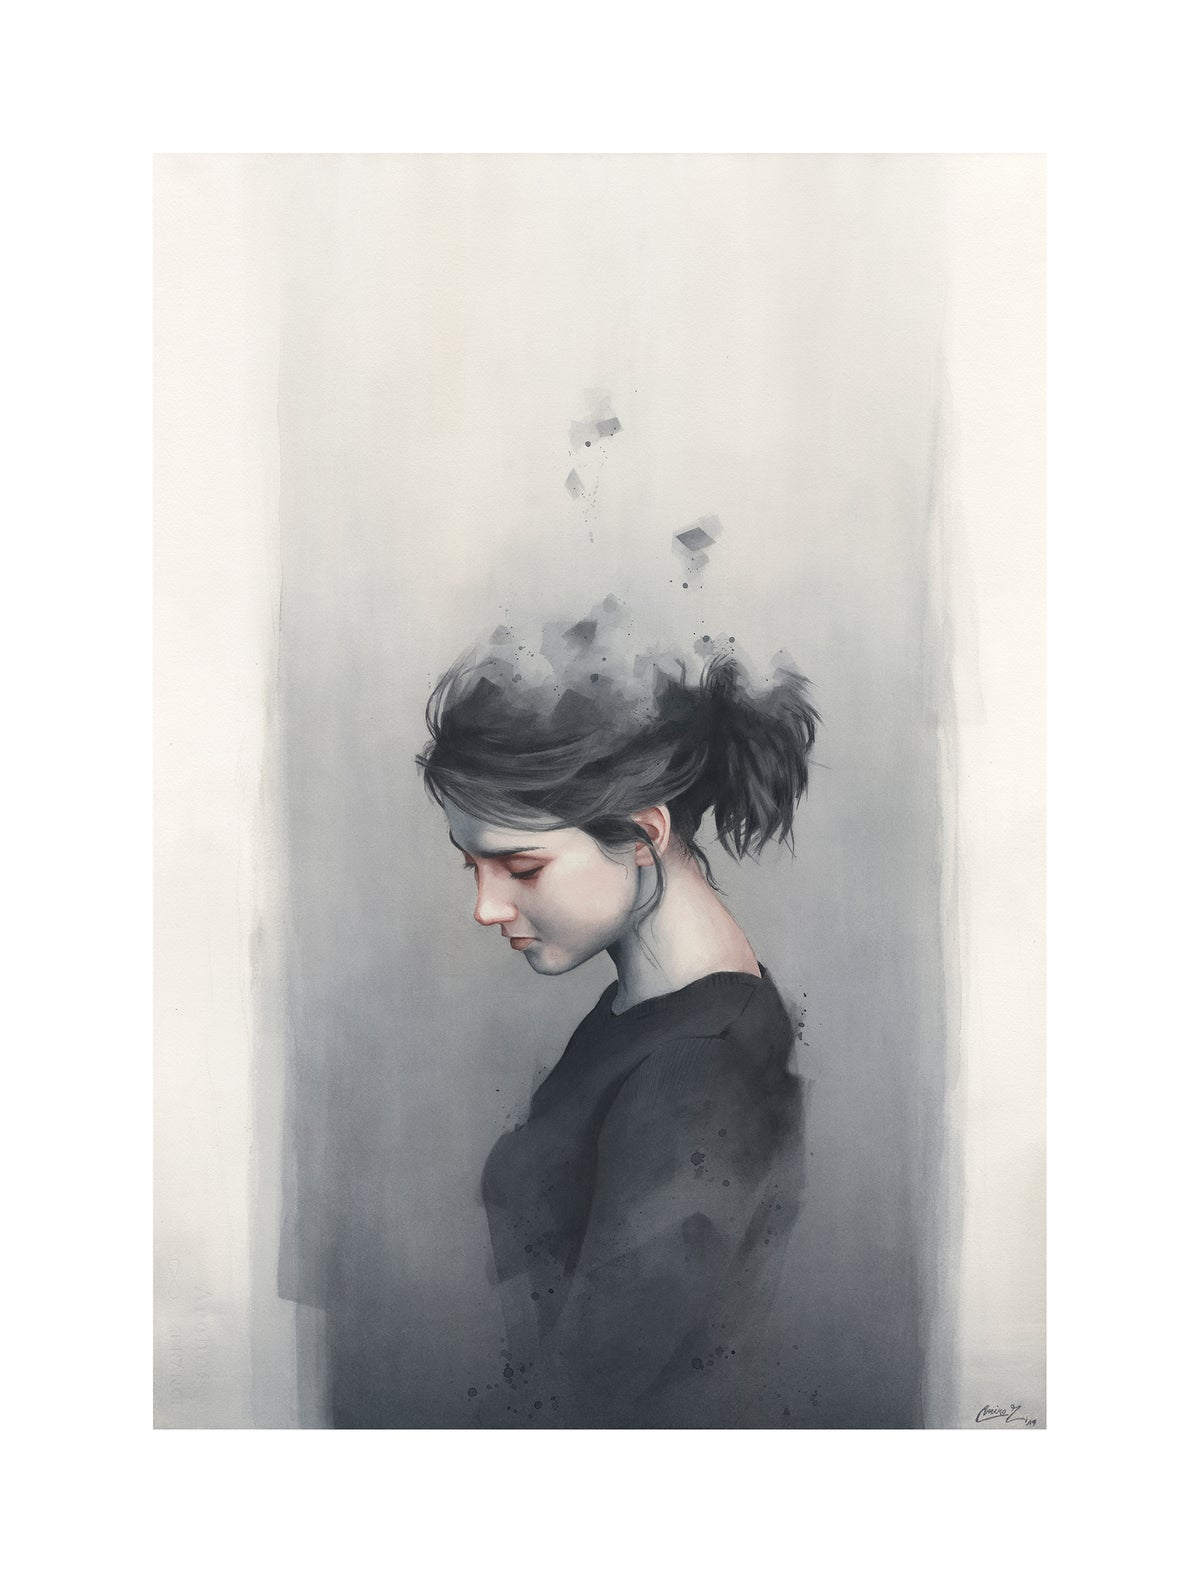 Image of Wane - Limited Edition Prints - SMALL